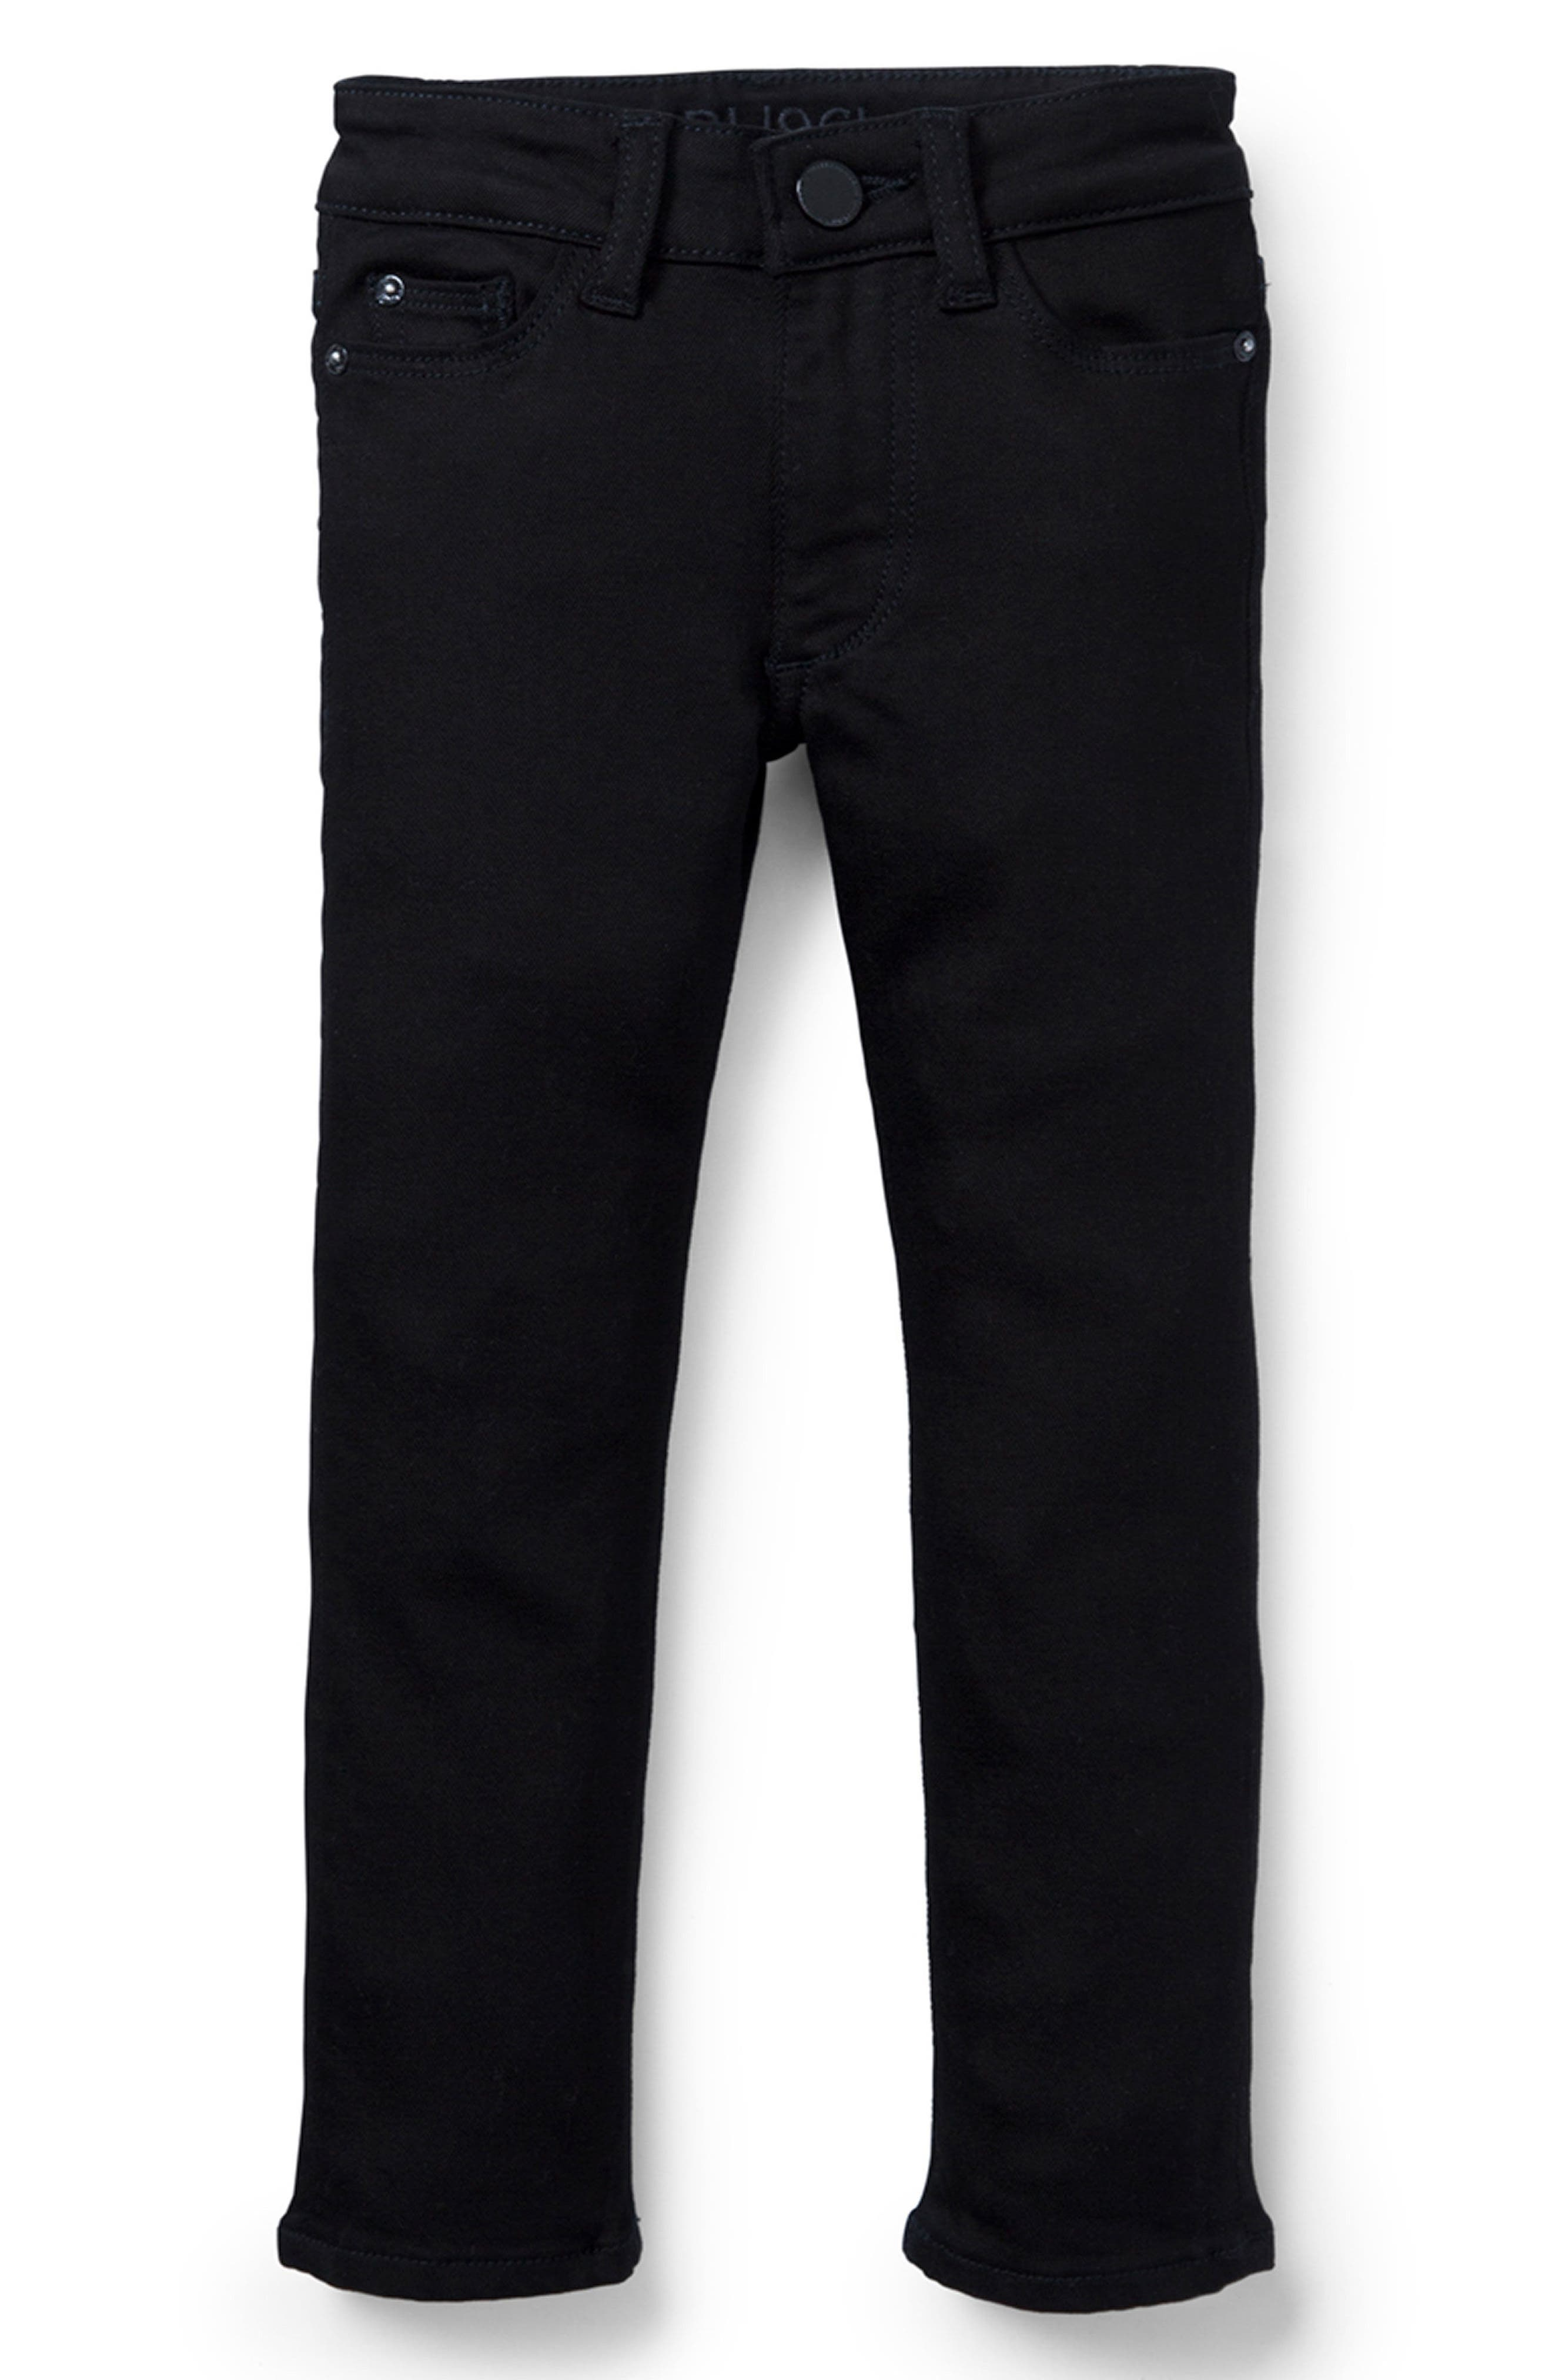 Alternate Image 1 Selected - DL1961 Stretch Skinny Jeans (Toddler Girls & Little Girls)